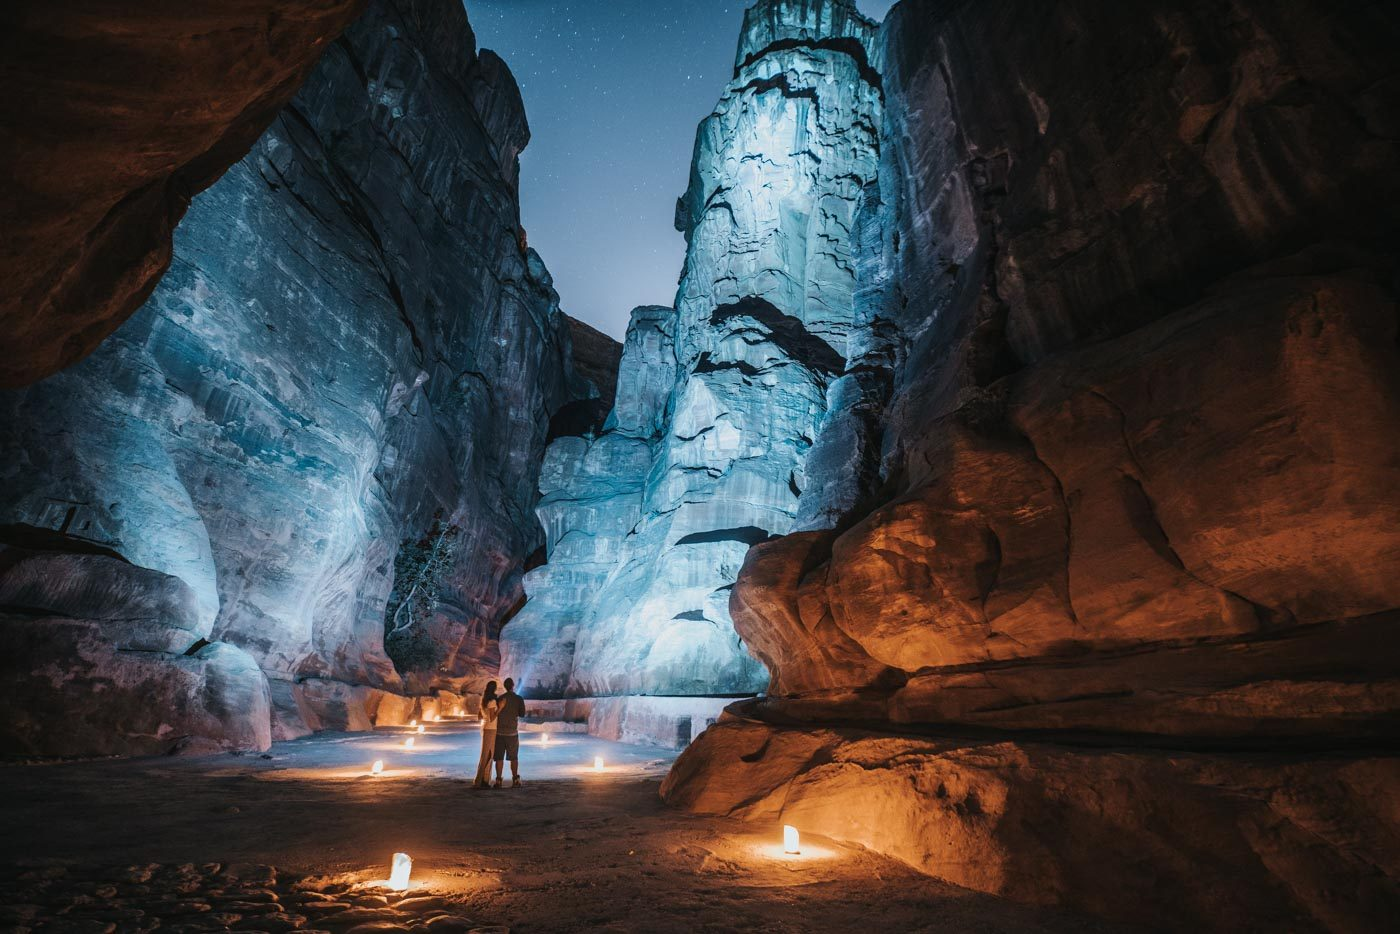 Things to do in Jordan: Admiring the Siq at night